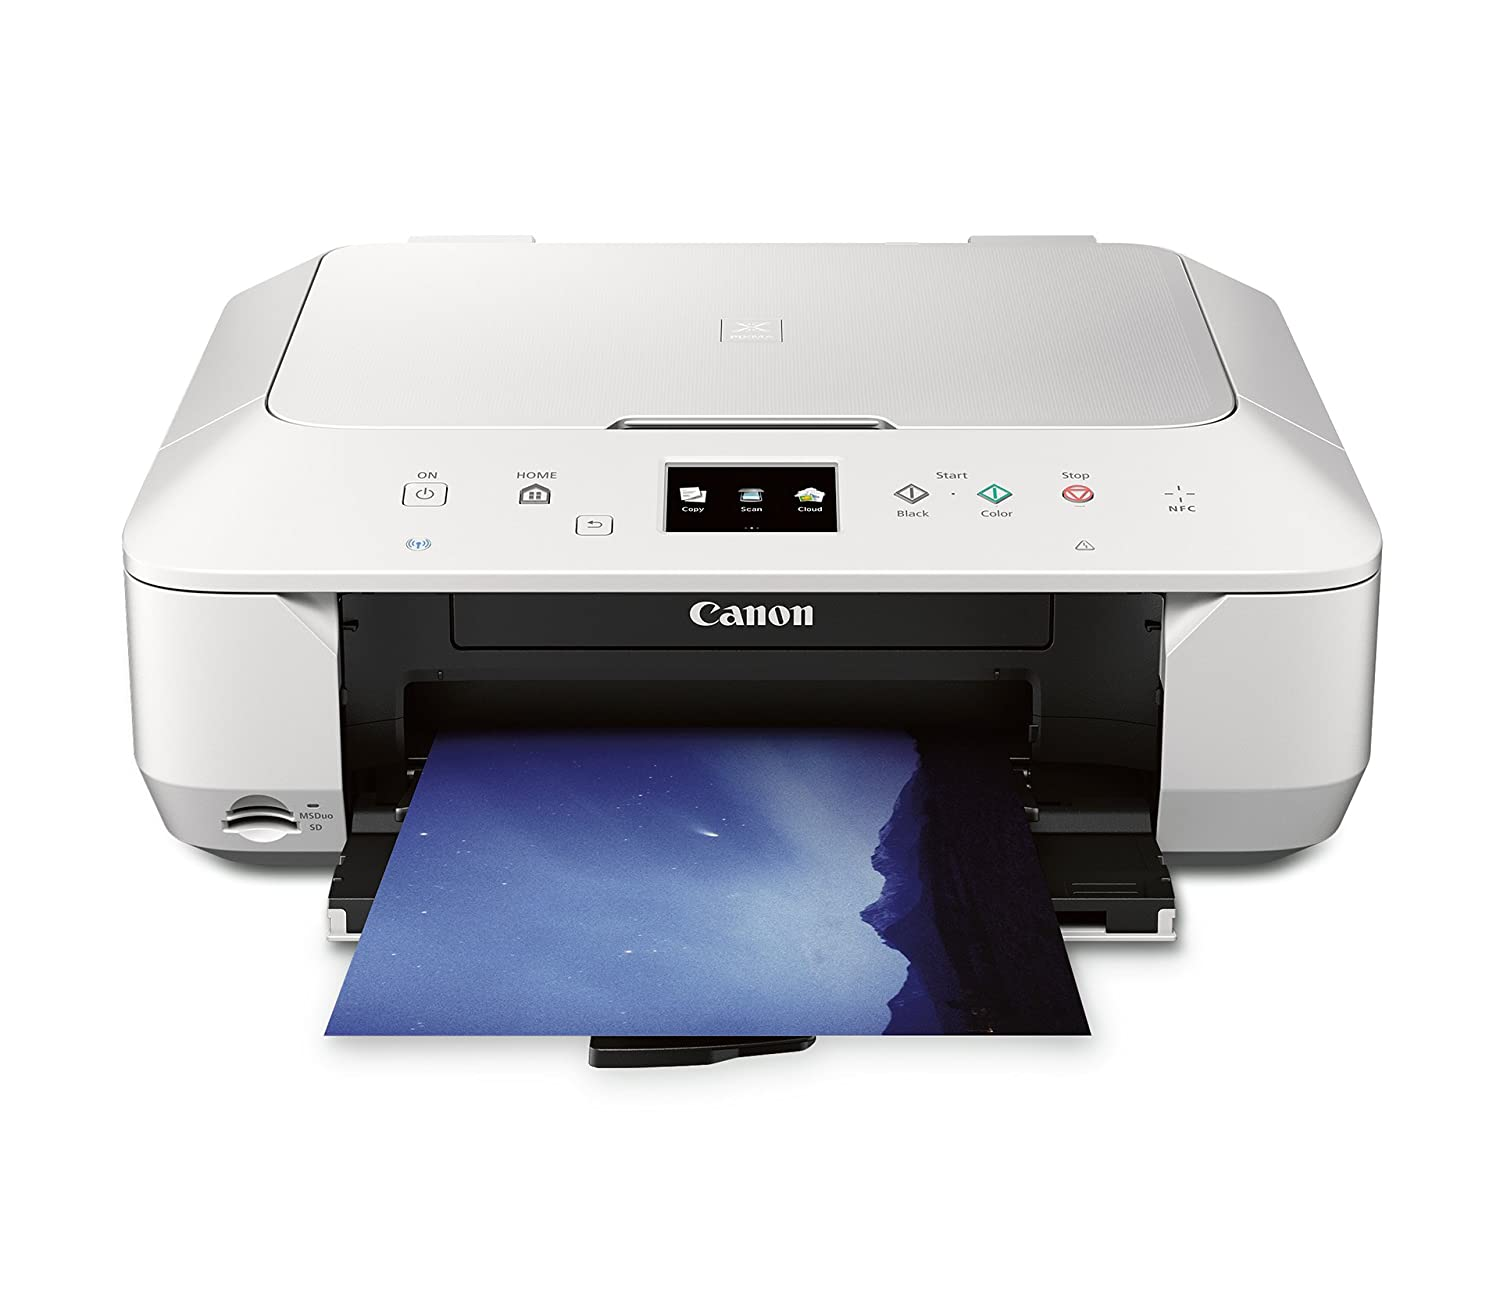 CANON PIXMA MG6620 WIRELESS ALL-IN-ONE COLOR CLOUD Printer, Mobile Smart Phone, Tablet Printing, and AirPrint(TM) Compatible, White